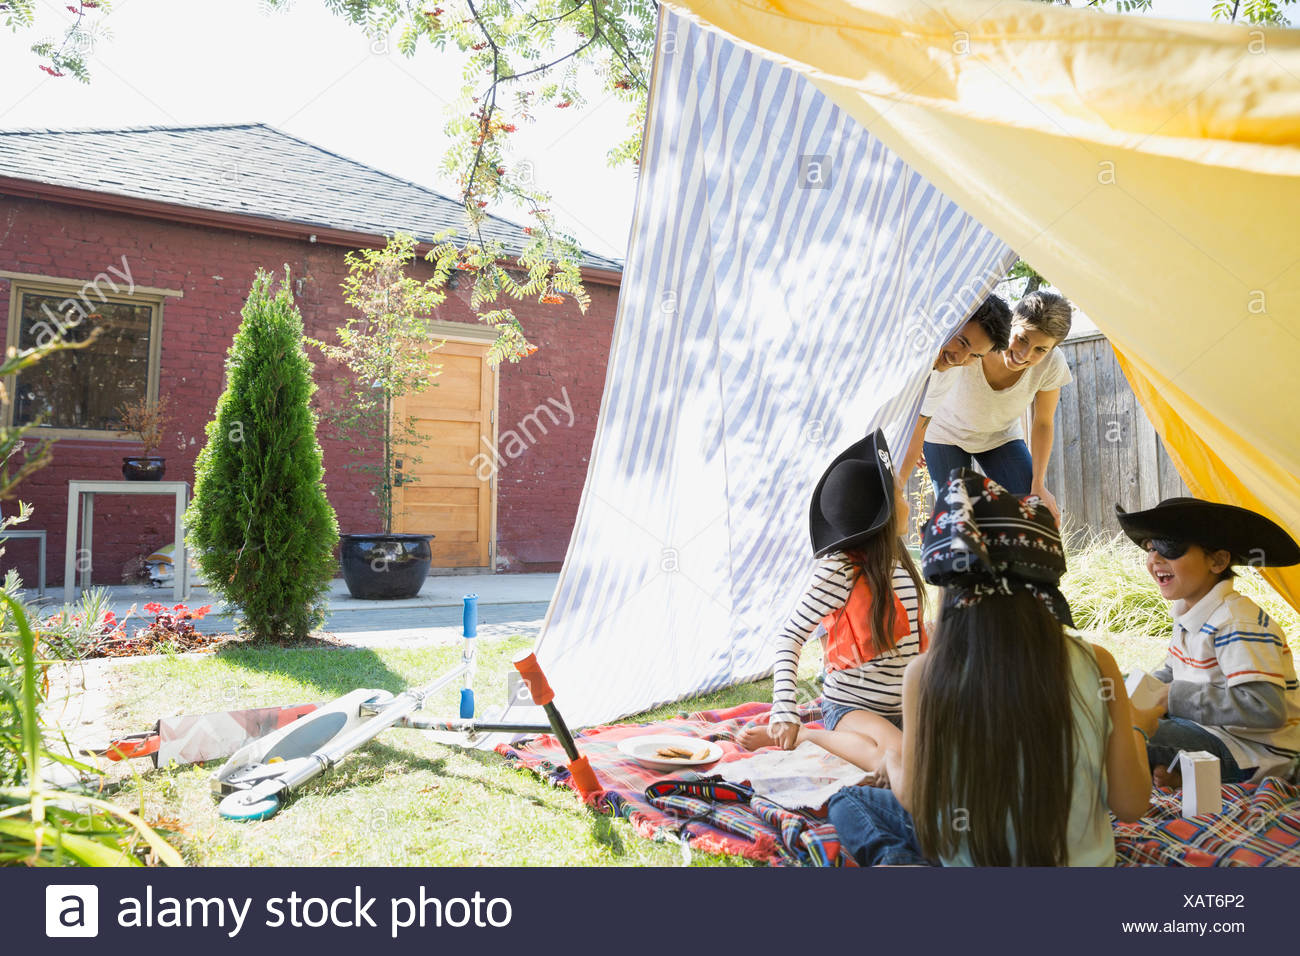 Parents watching children playing pirates in backyard fort - Stock Image